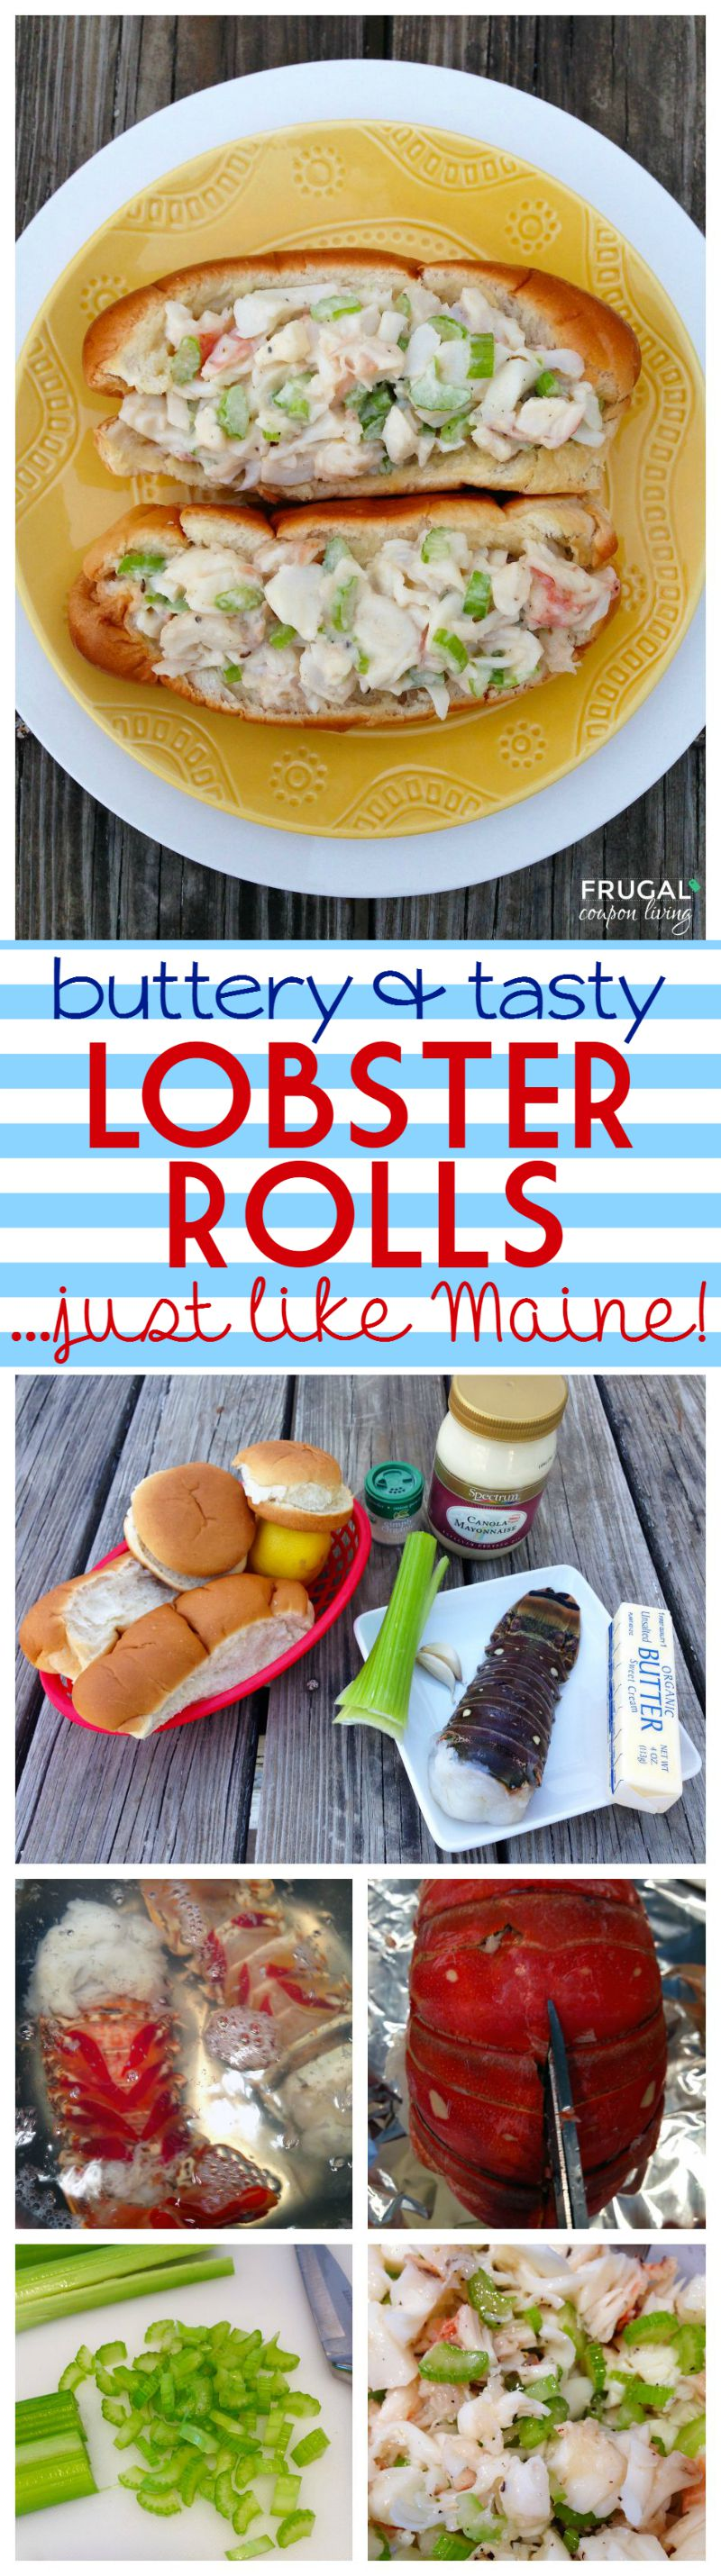 lobster-rolls-Collage-frugal-coupon-living-edited